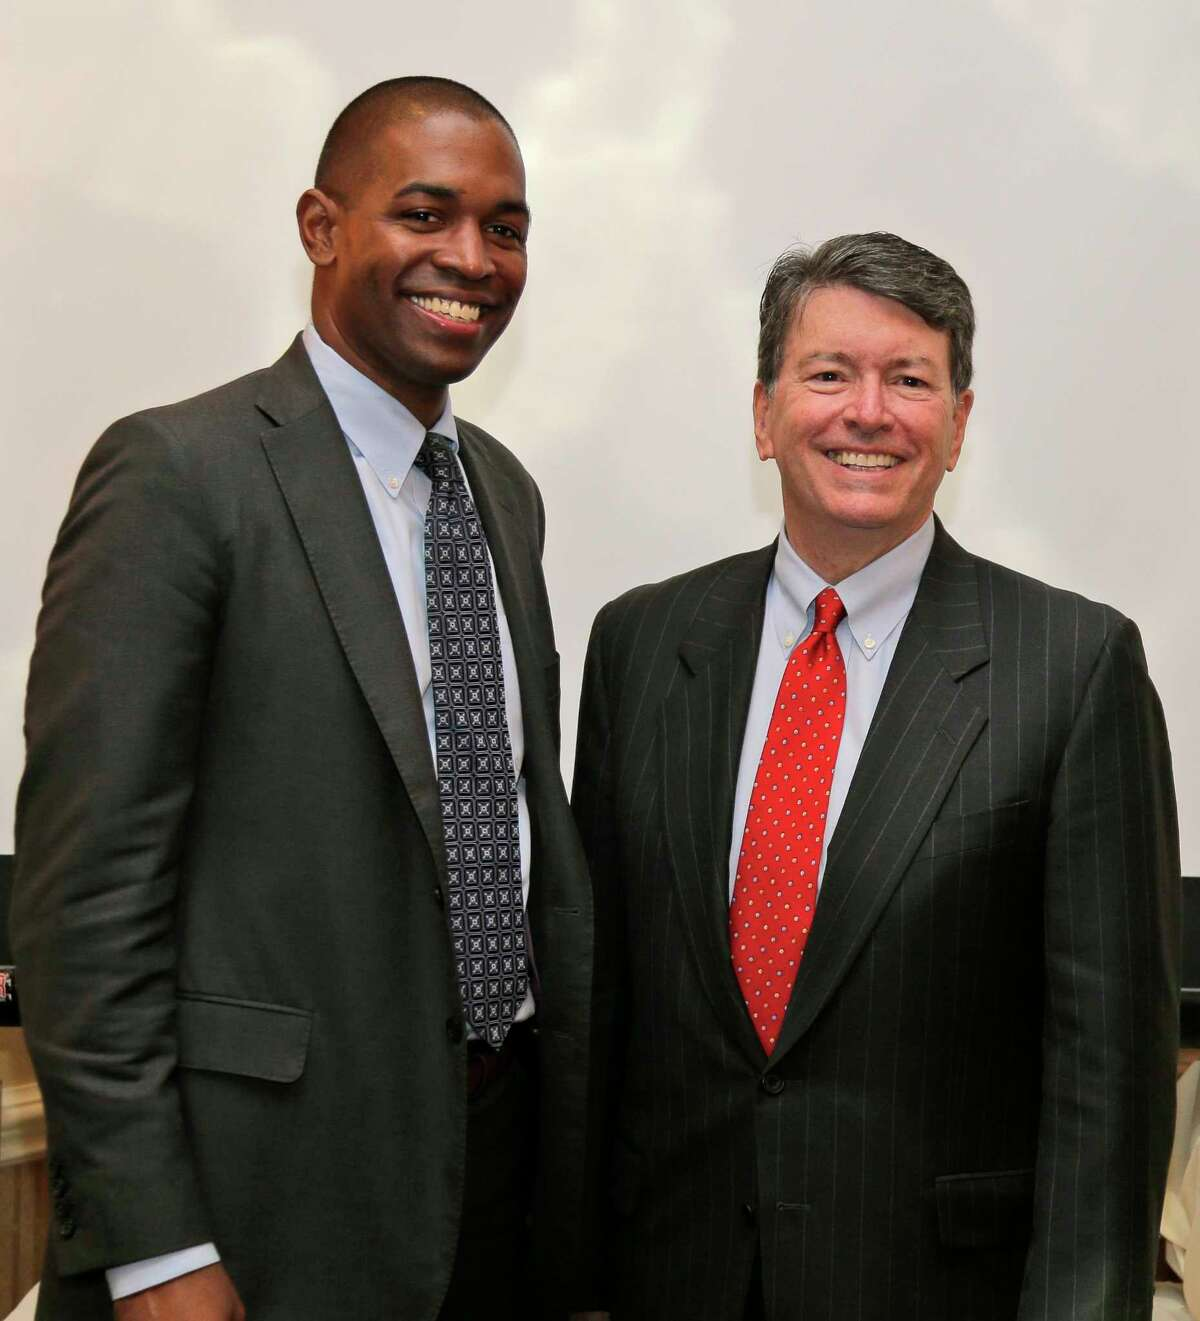 Republican U.S. Rep. John Faso, right, and his Democratic challenger, Antonio Delgado, pose for a picture after a candidate forum in Poughkeepsie, N.Y., Wednesday, Oct. 17, 2018. Hip-hop, health care and Brett Kavanaugh have emerged as issues in a too-close-to-call congressional race in New York?'s Hudson Valley that pits the freshman Republican congressman against a rapper-turned-corporate lawyer seeking his first political office. (AP Photo/Seth Wenig)